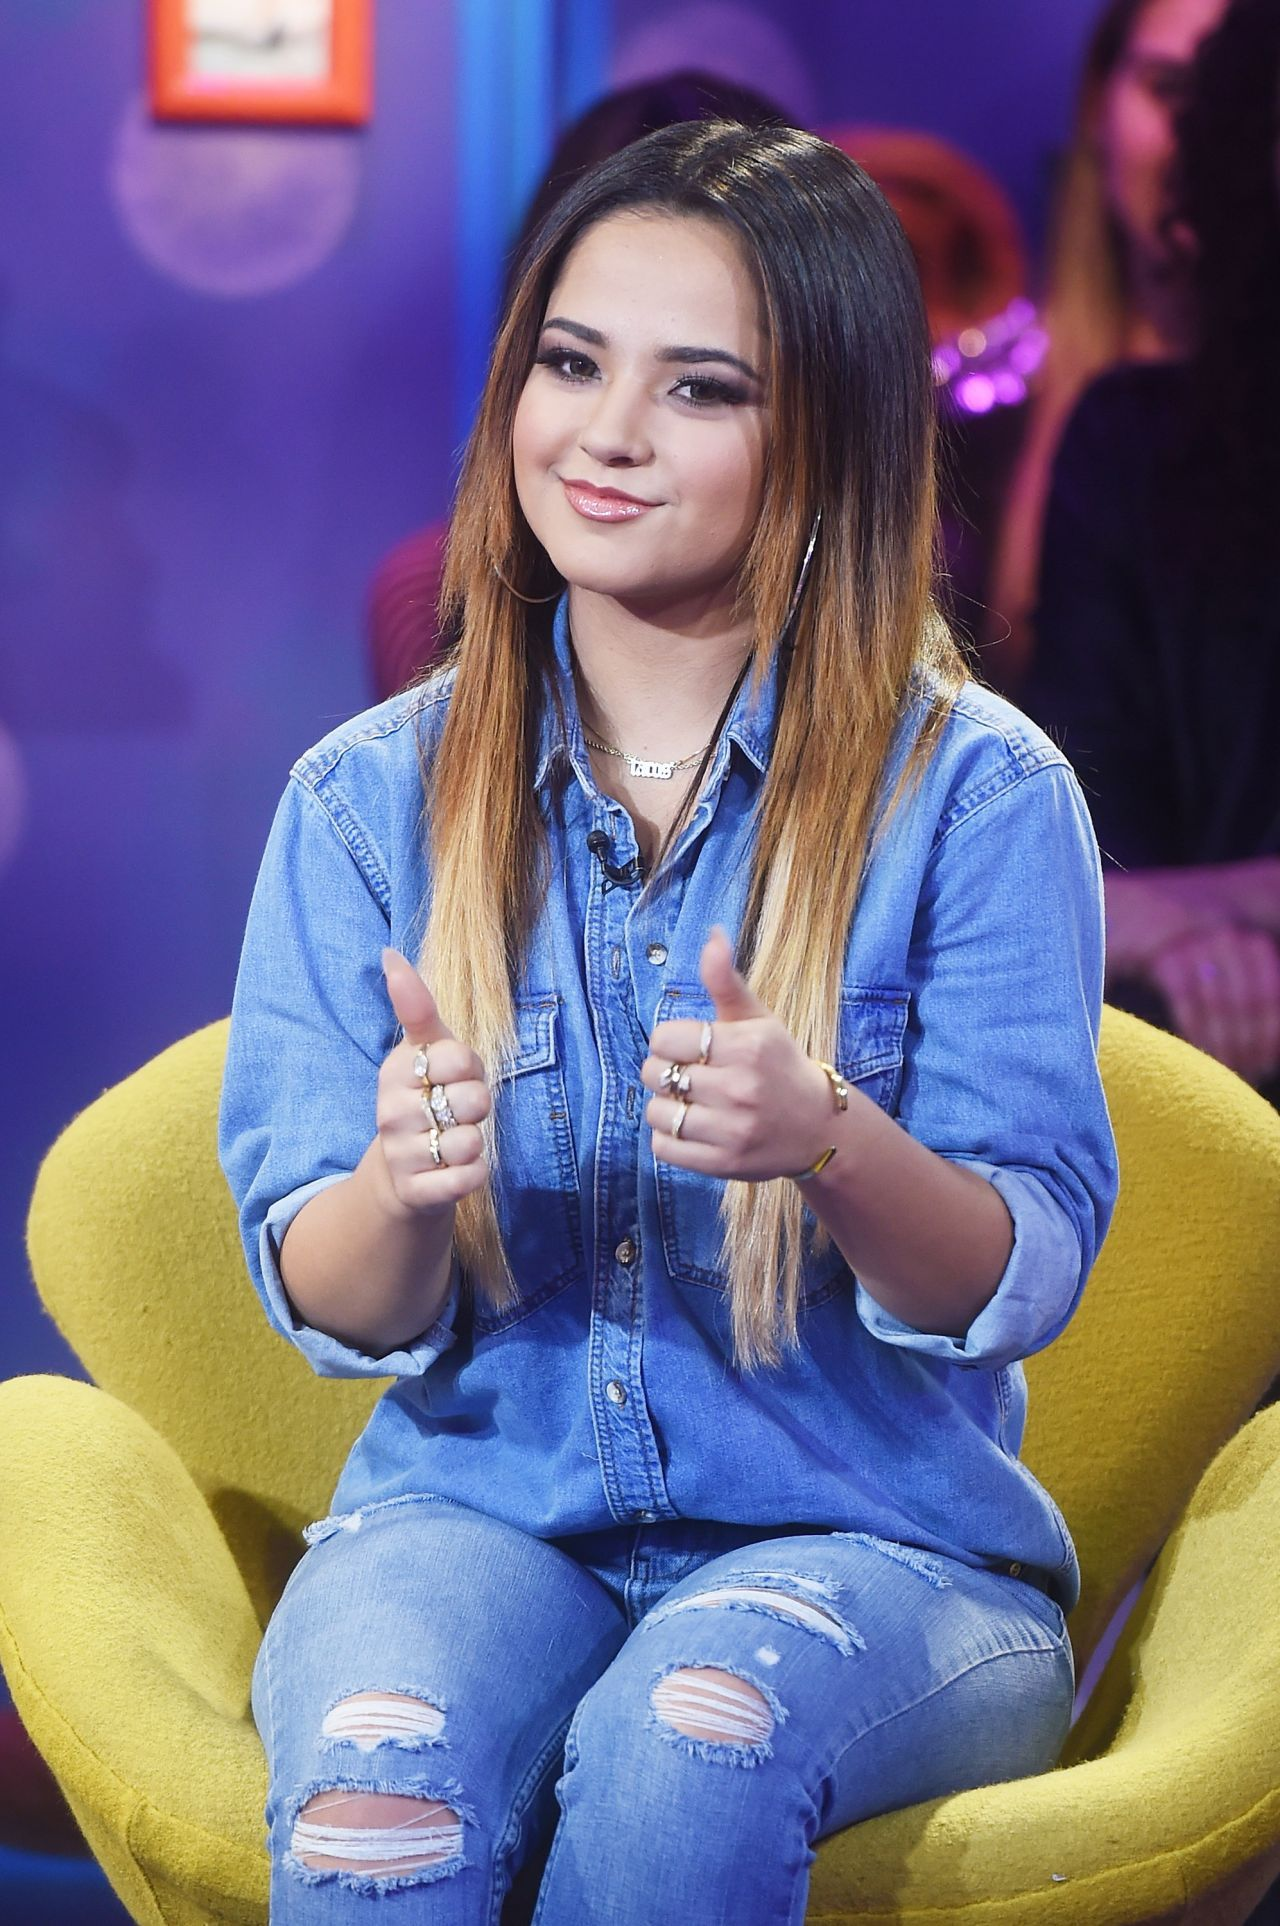 Becky g coloring pages - Explore Becky G Style Portrait Photo And More